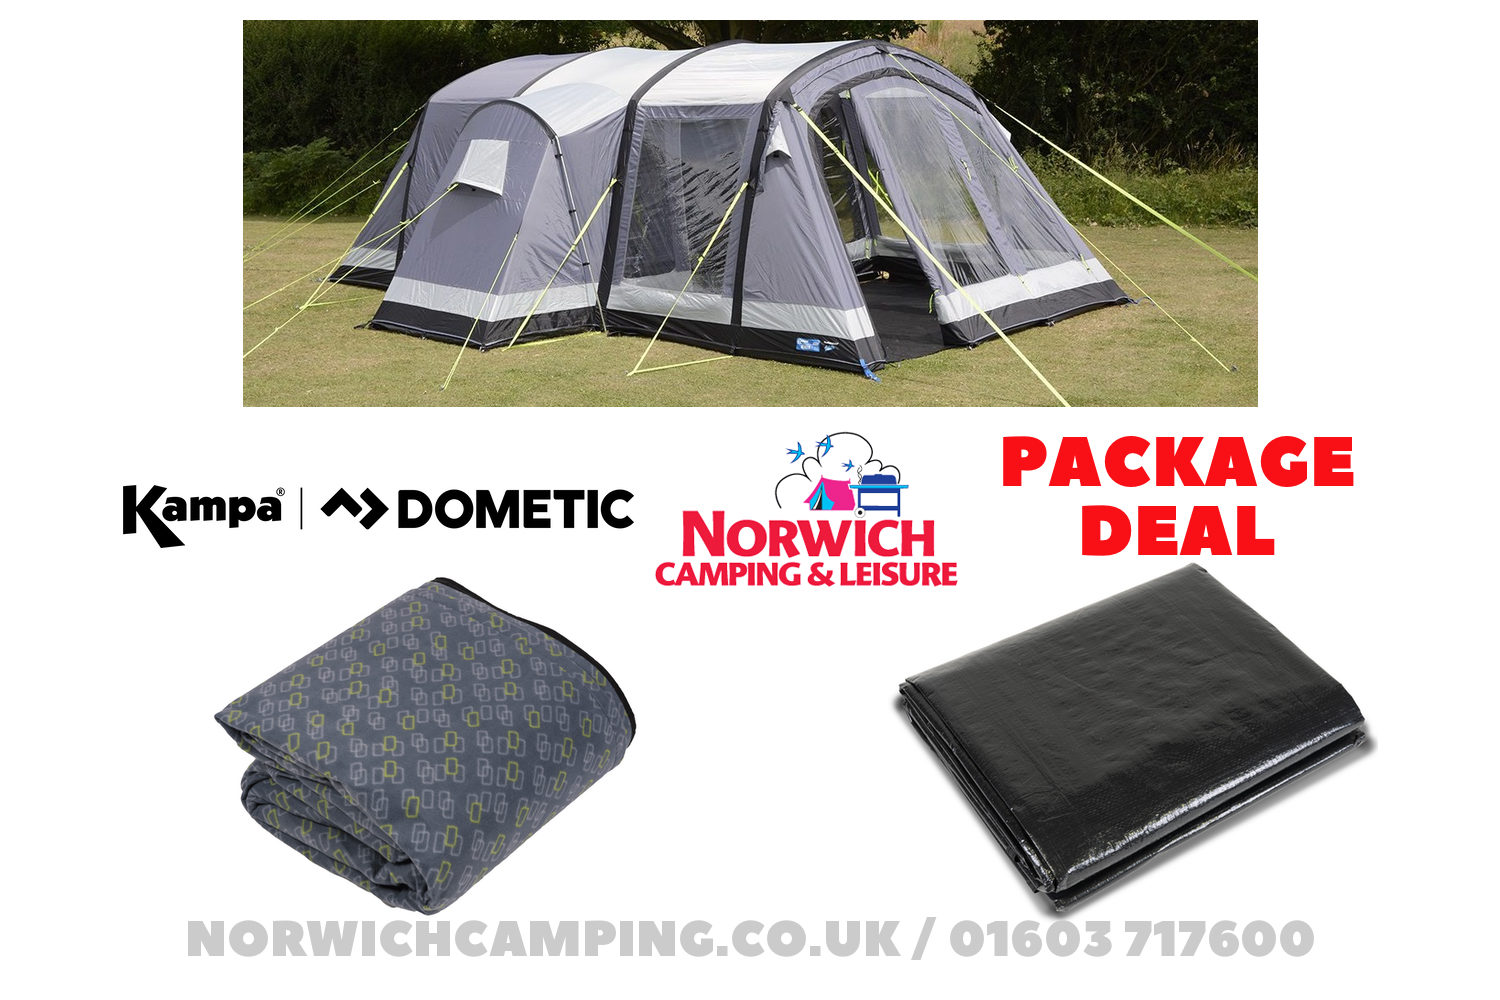 Kampa Bergen 4 Tent Package Deal